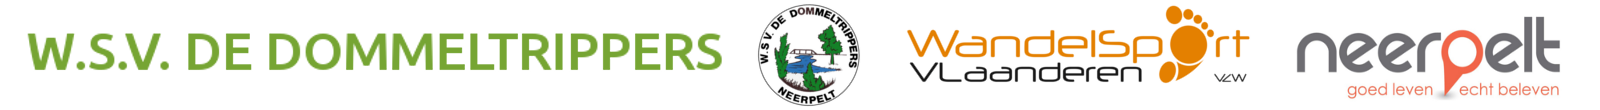 Dommeltrippers